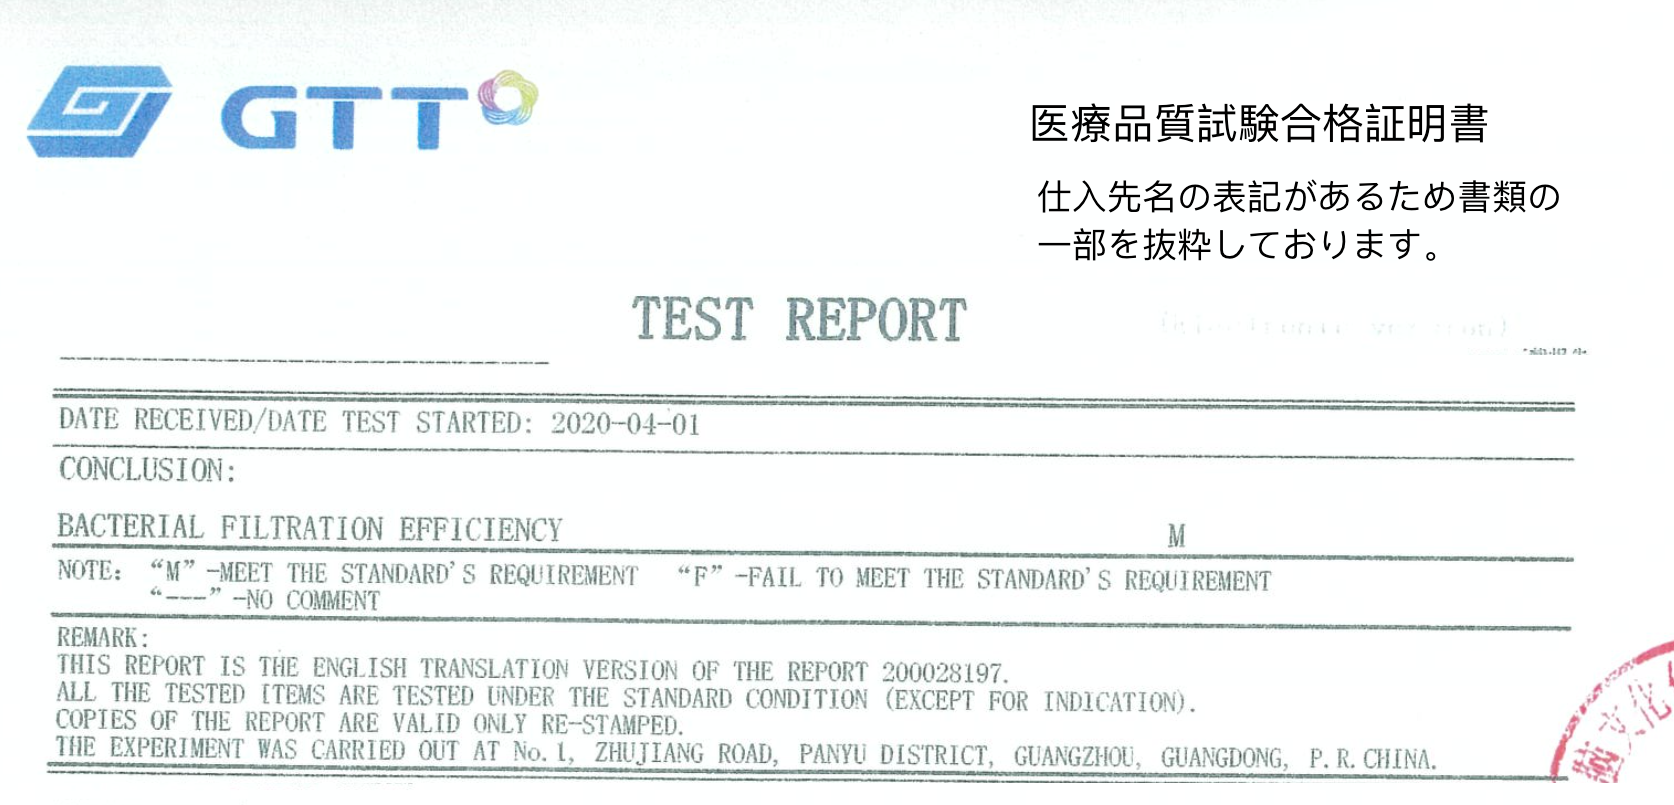 MASKS TEST REPORT